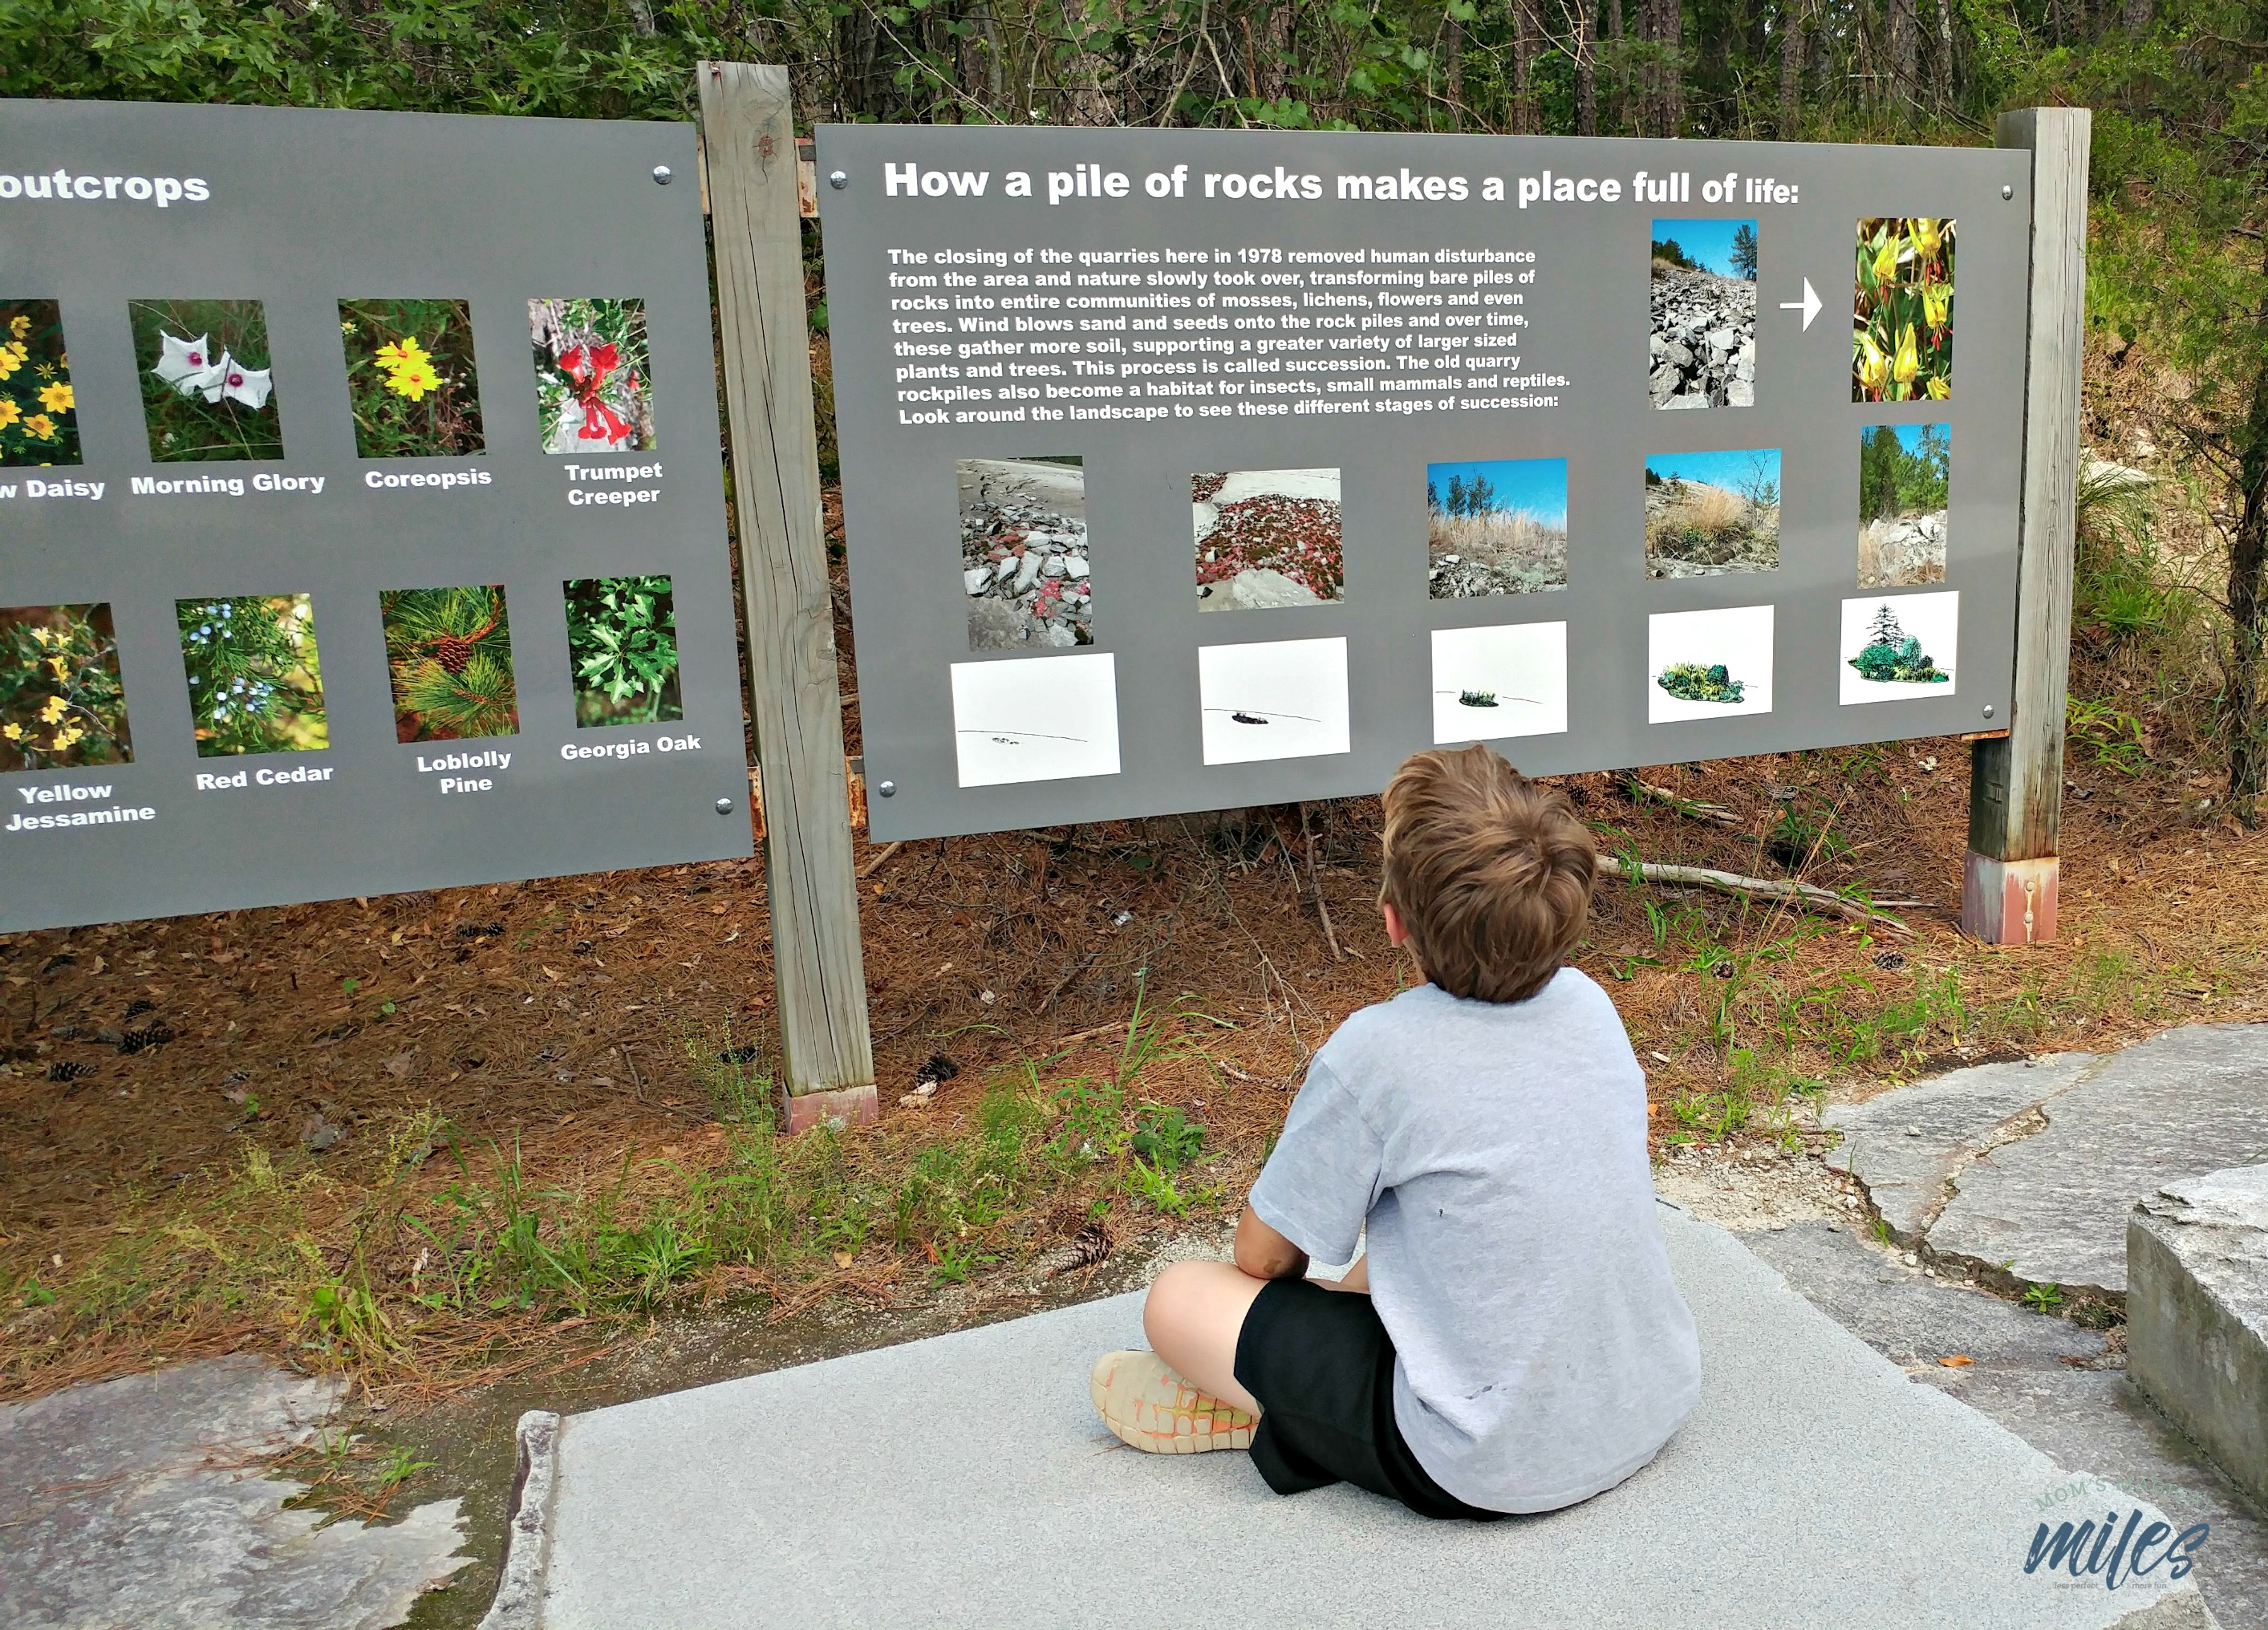 If you are looking for free things to do at Stone Mountain Park, check out the Quarry Exhibit!